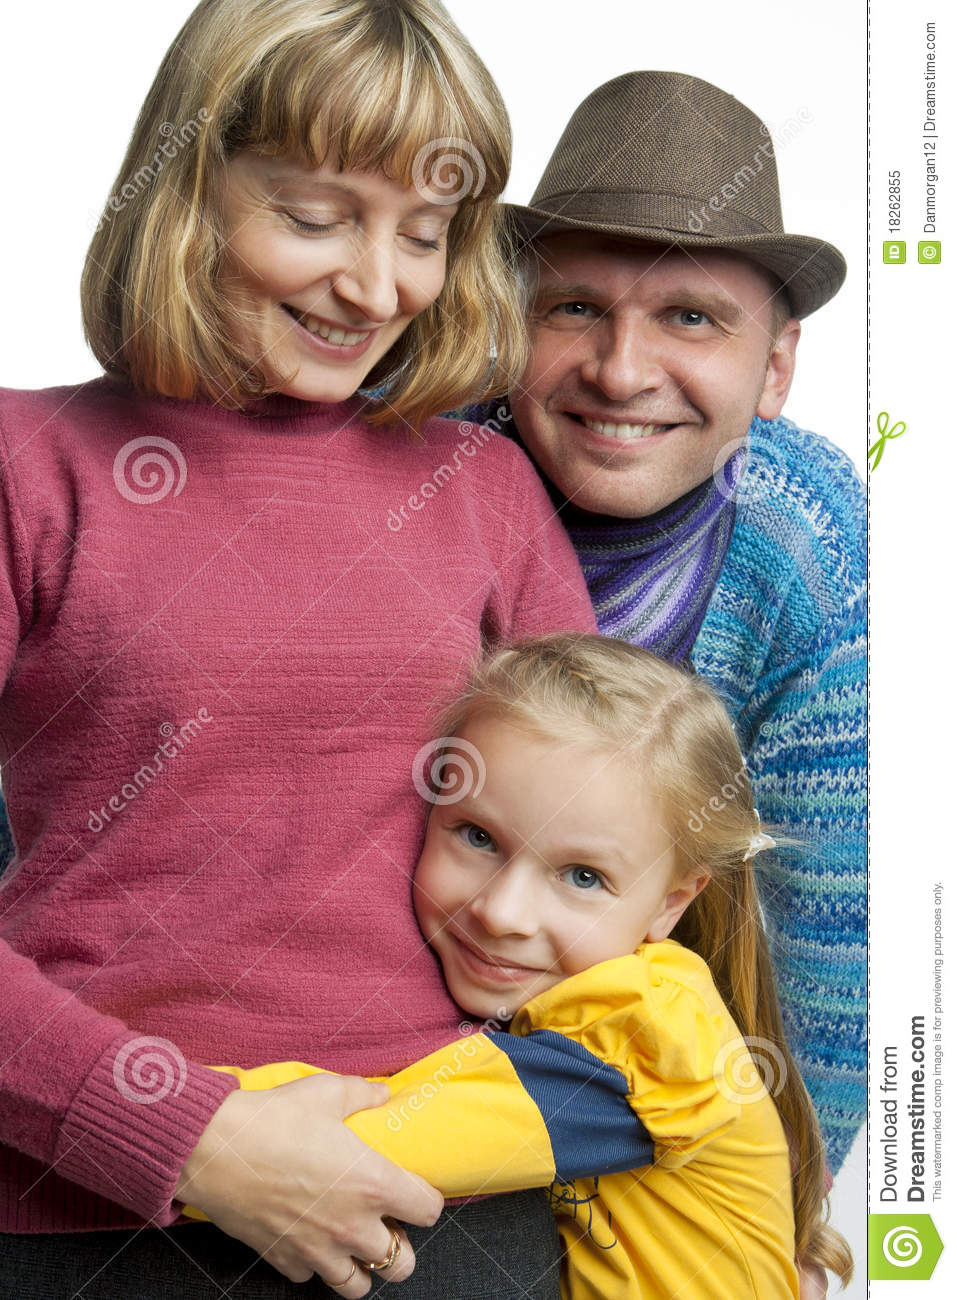 Keep A Smile On Your Face Stock Image Image Of Excitement 18262855